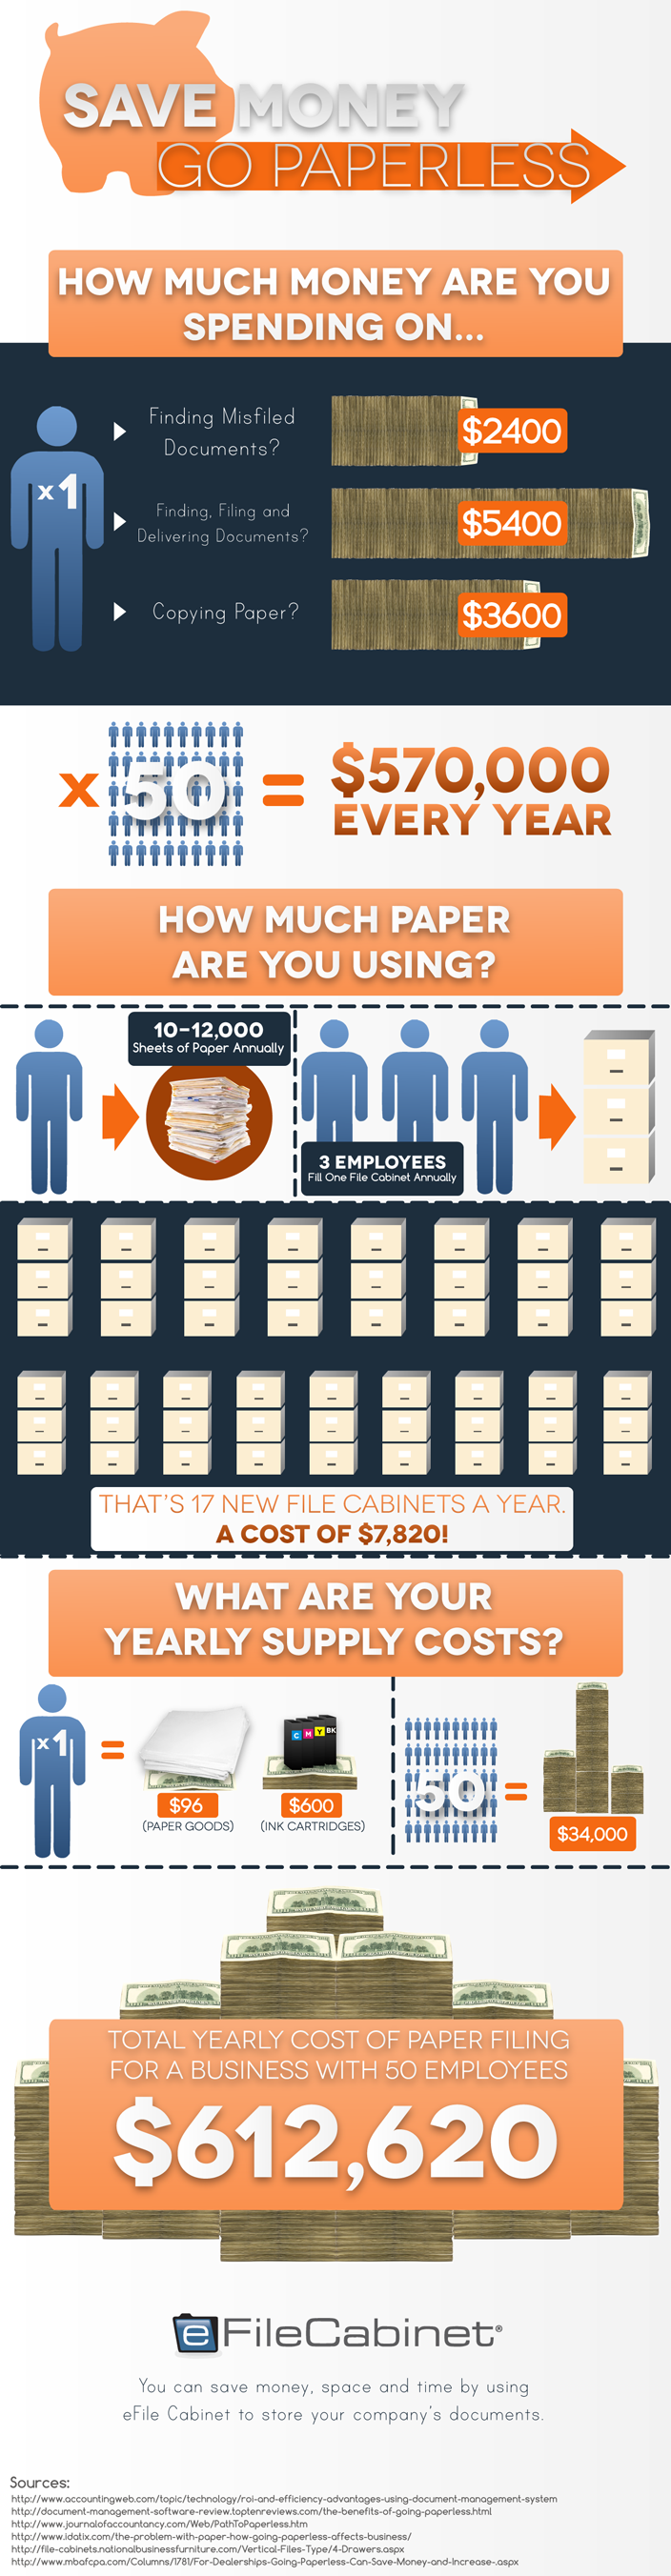 Save Money, Go Paperless Infographic - eFileCabinet